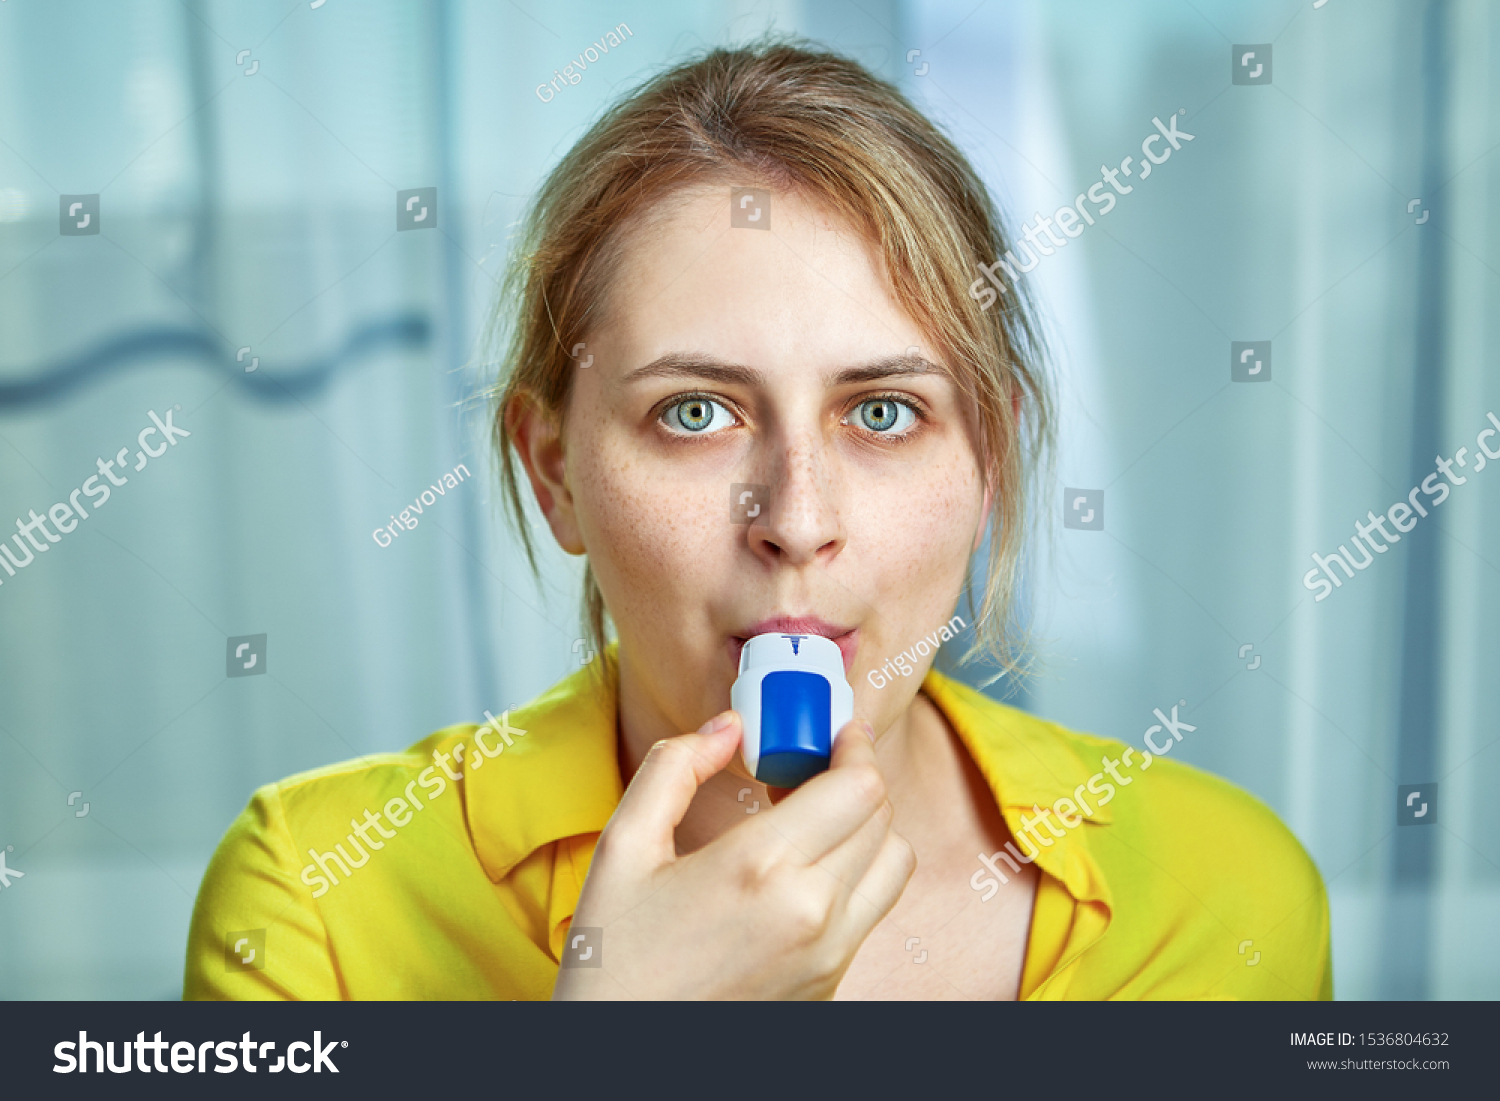 COPD or chronic obstructive pulmonary disease treatment with bronchodilator powder inhaler. A young woman uses dispenser with powders inhalation to relieve symptoms of asthma, and breathing relief.